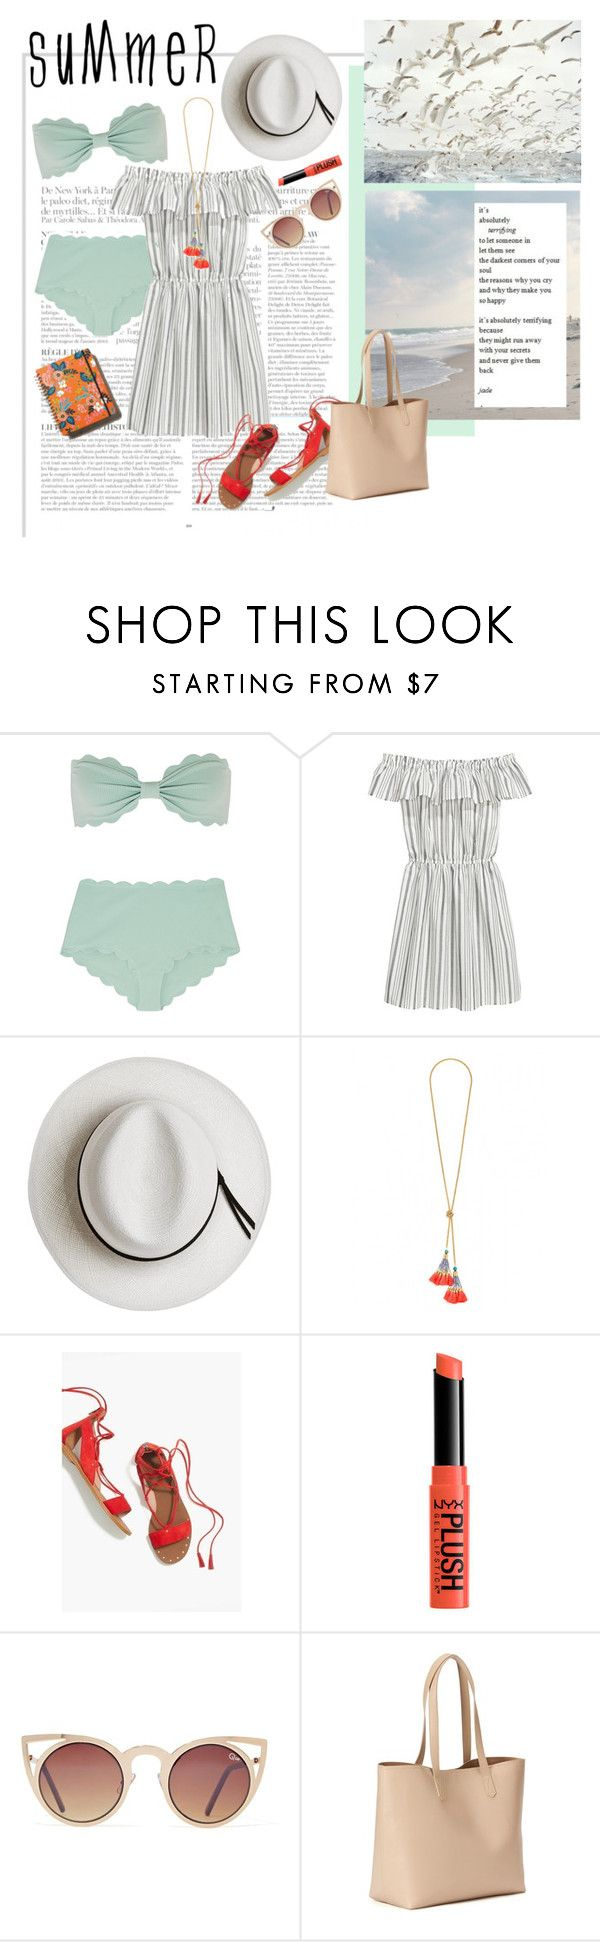 """sommartid"" by emyemoemu ❤ liked on Polyvore featuring Anja, Marysia Swim, Calypso Private Label, Madewell, Quay, Old Navy and Rifle Paper Co"